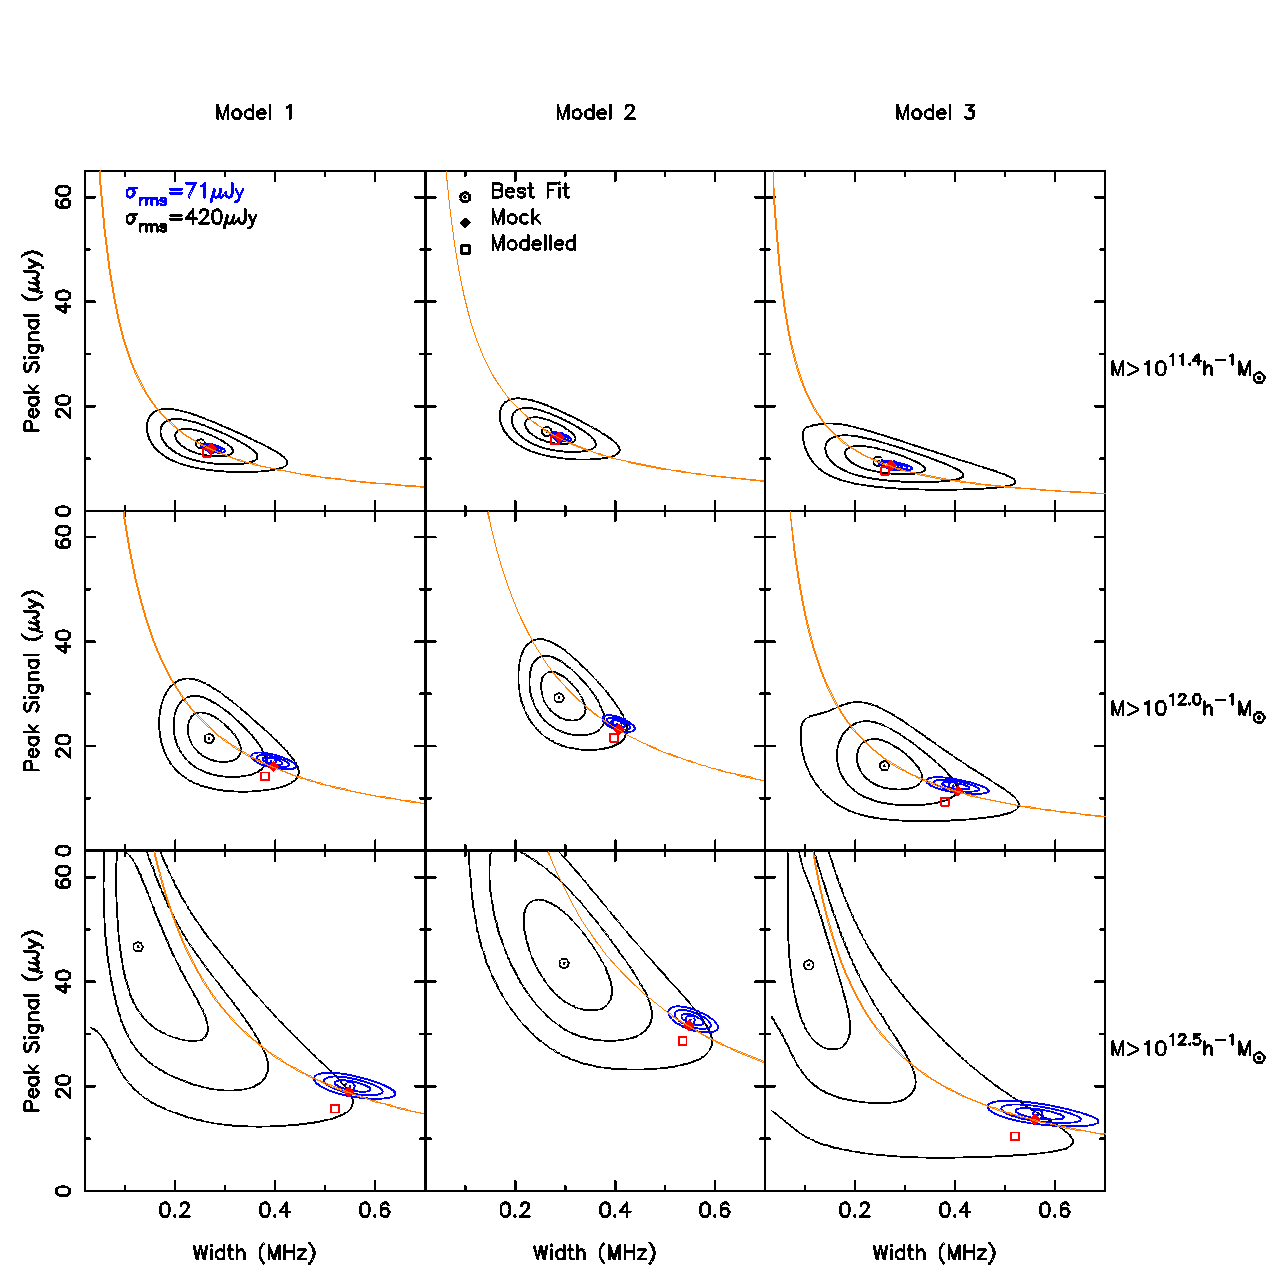 Confidence contours for width and height of the fitted Gaussians for the three models (columns) and the three mass cuts